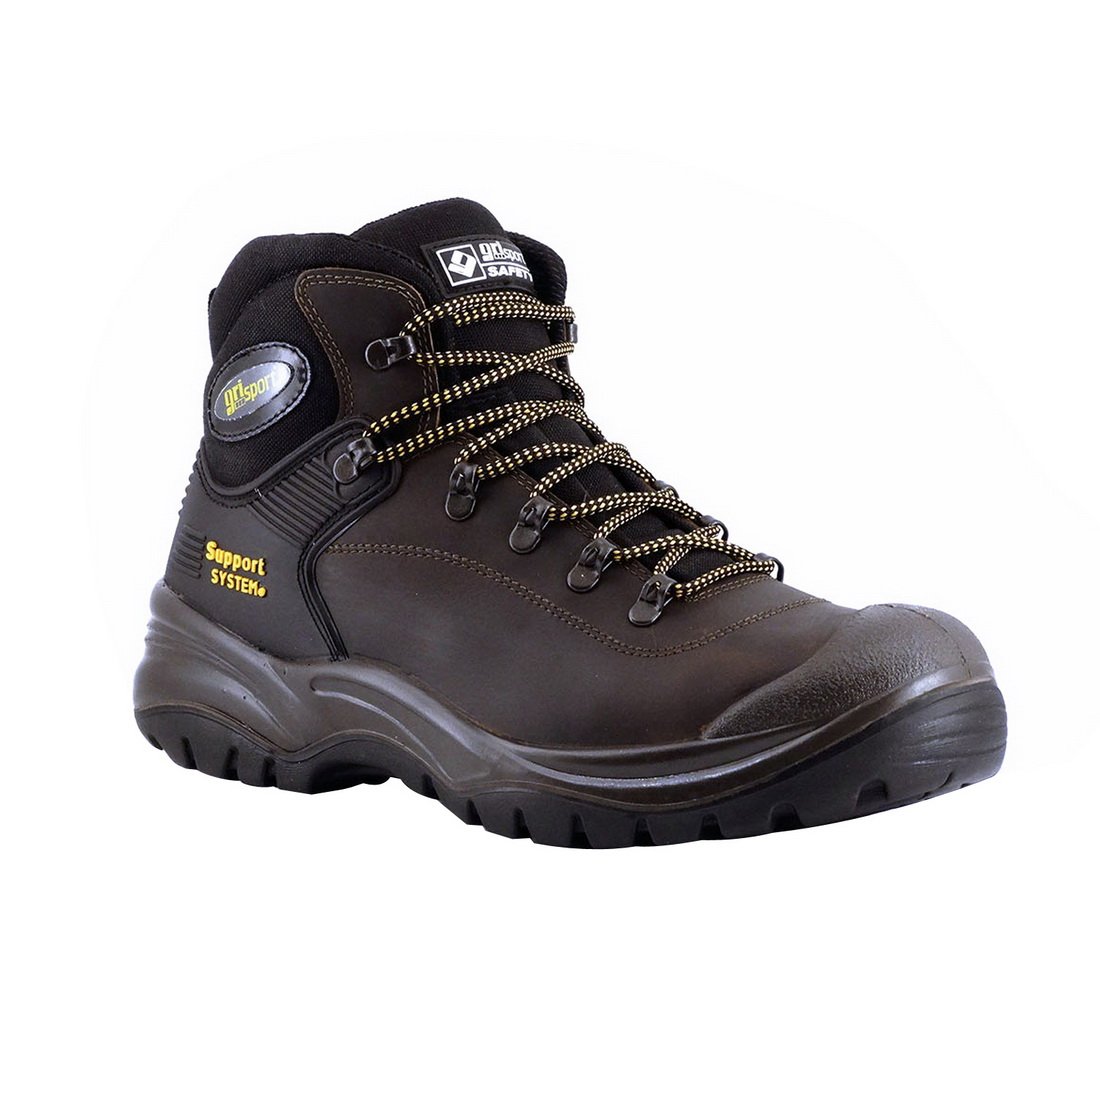 Contractor Safety Boot Size 8 Brown